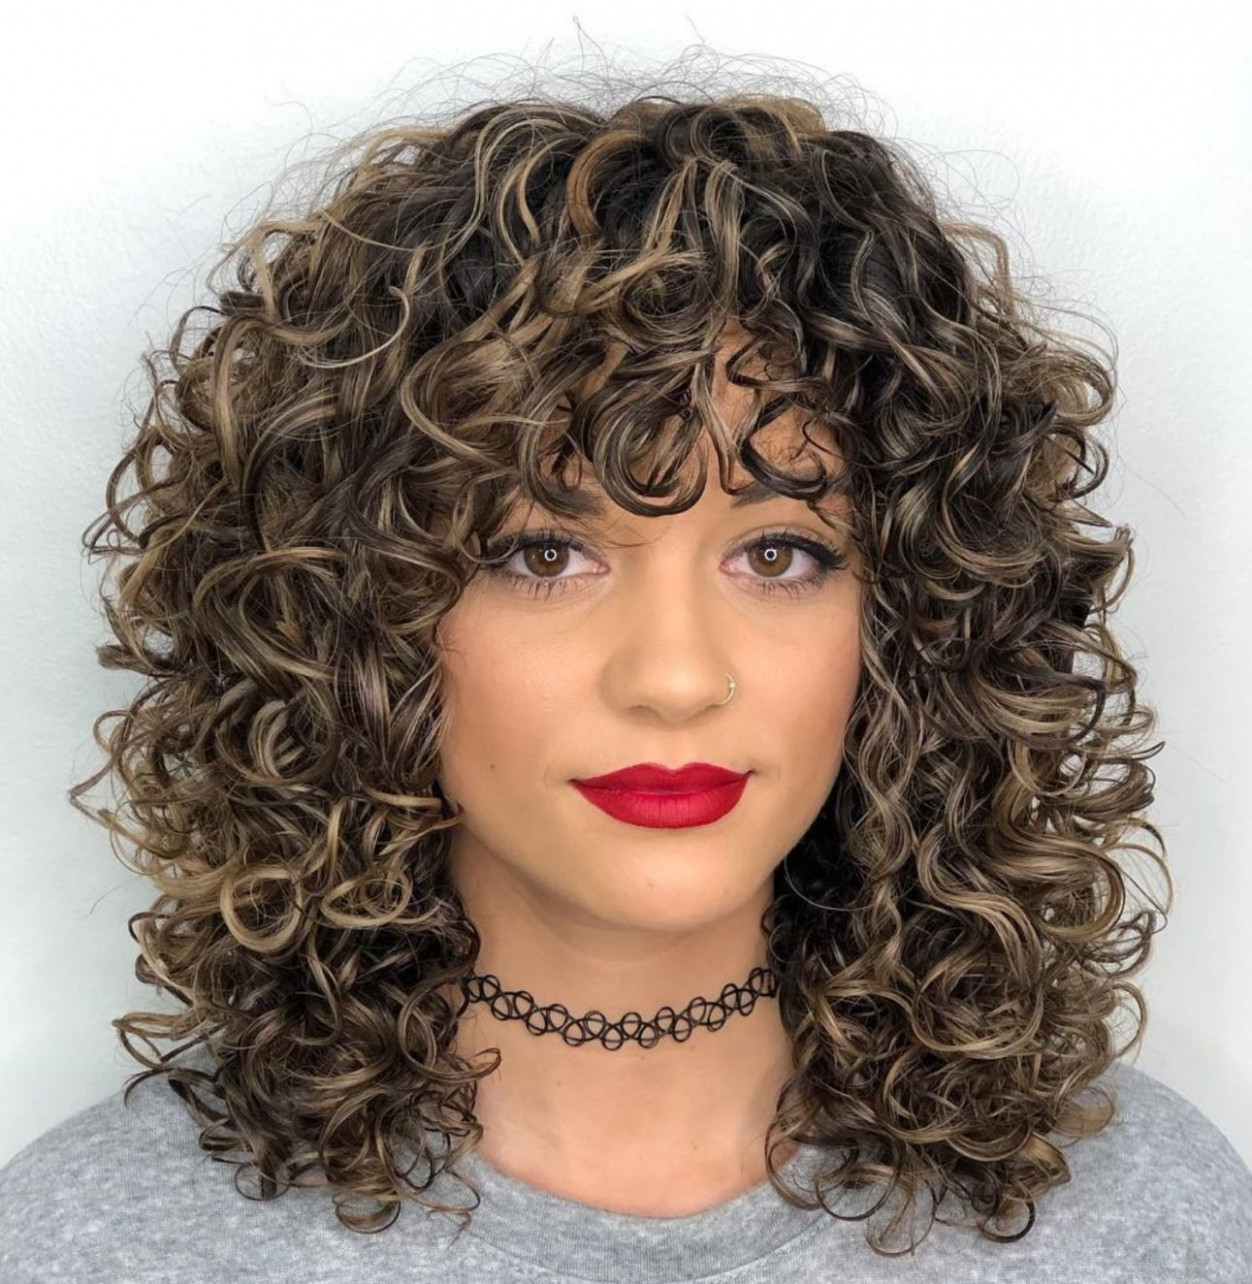 Pin on hair & beauty medium length curly hairstyles with bangs